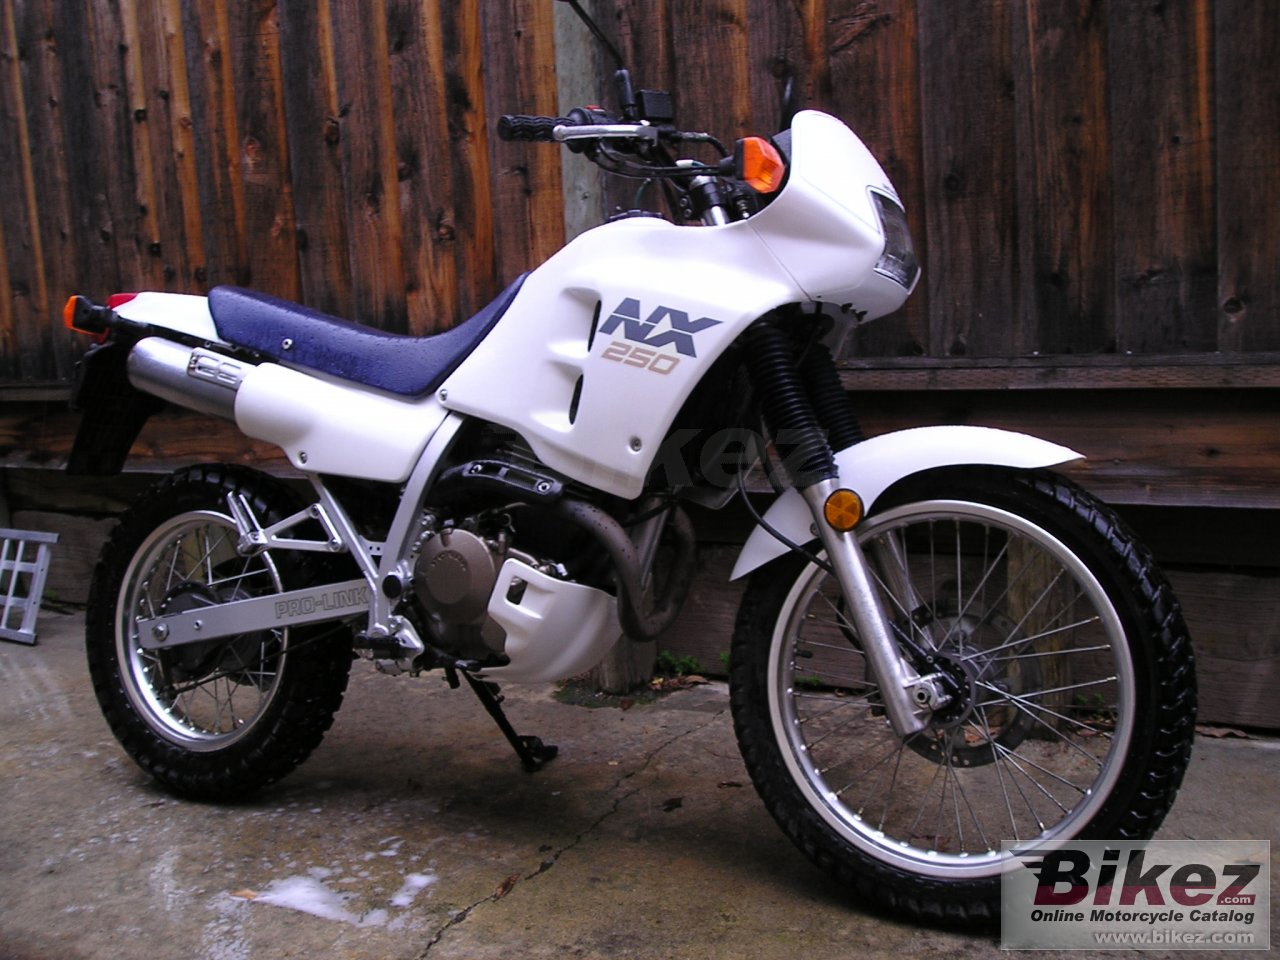 Big  nx 250 picture and wallpaper from Bikez.com